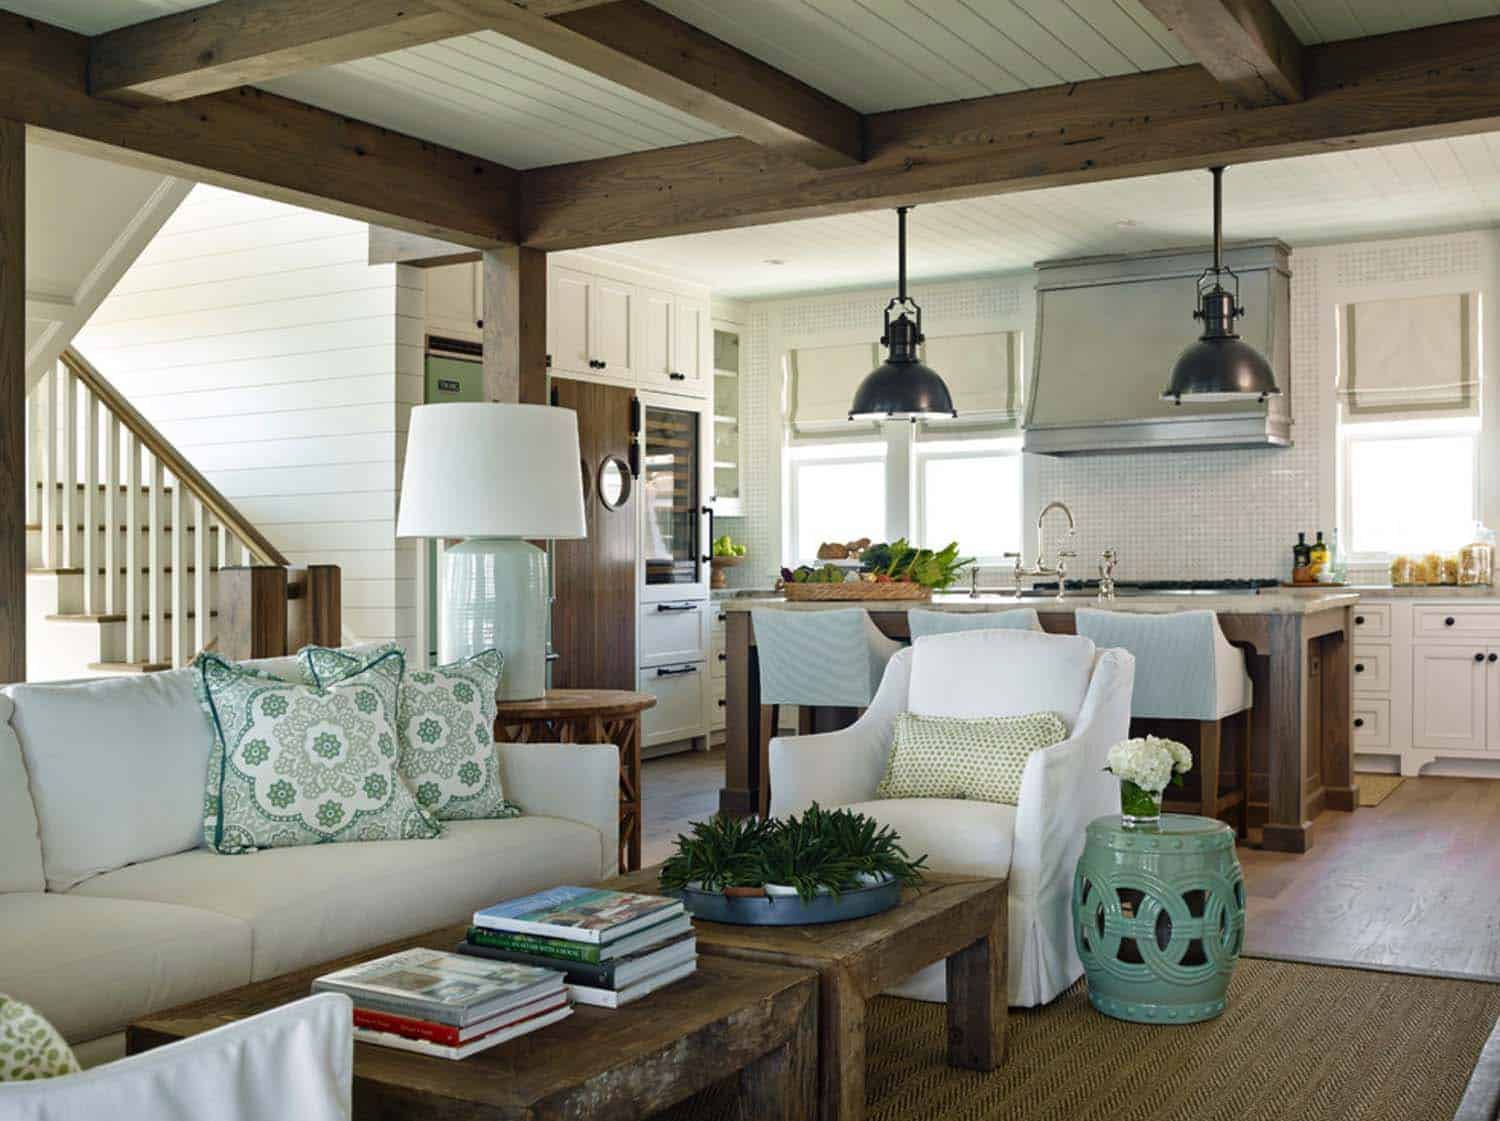 shingle-style-beach-house-ts-adams-studio-09-1-kindesgin